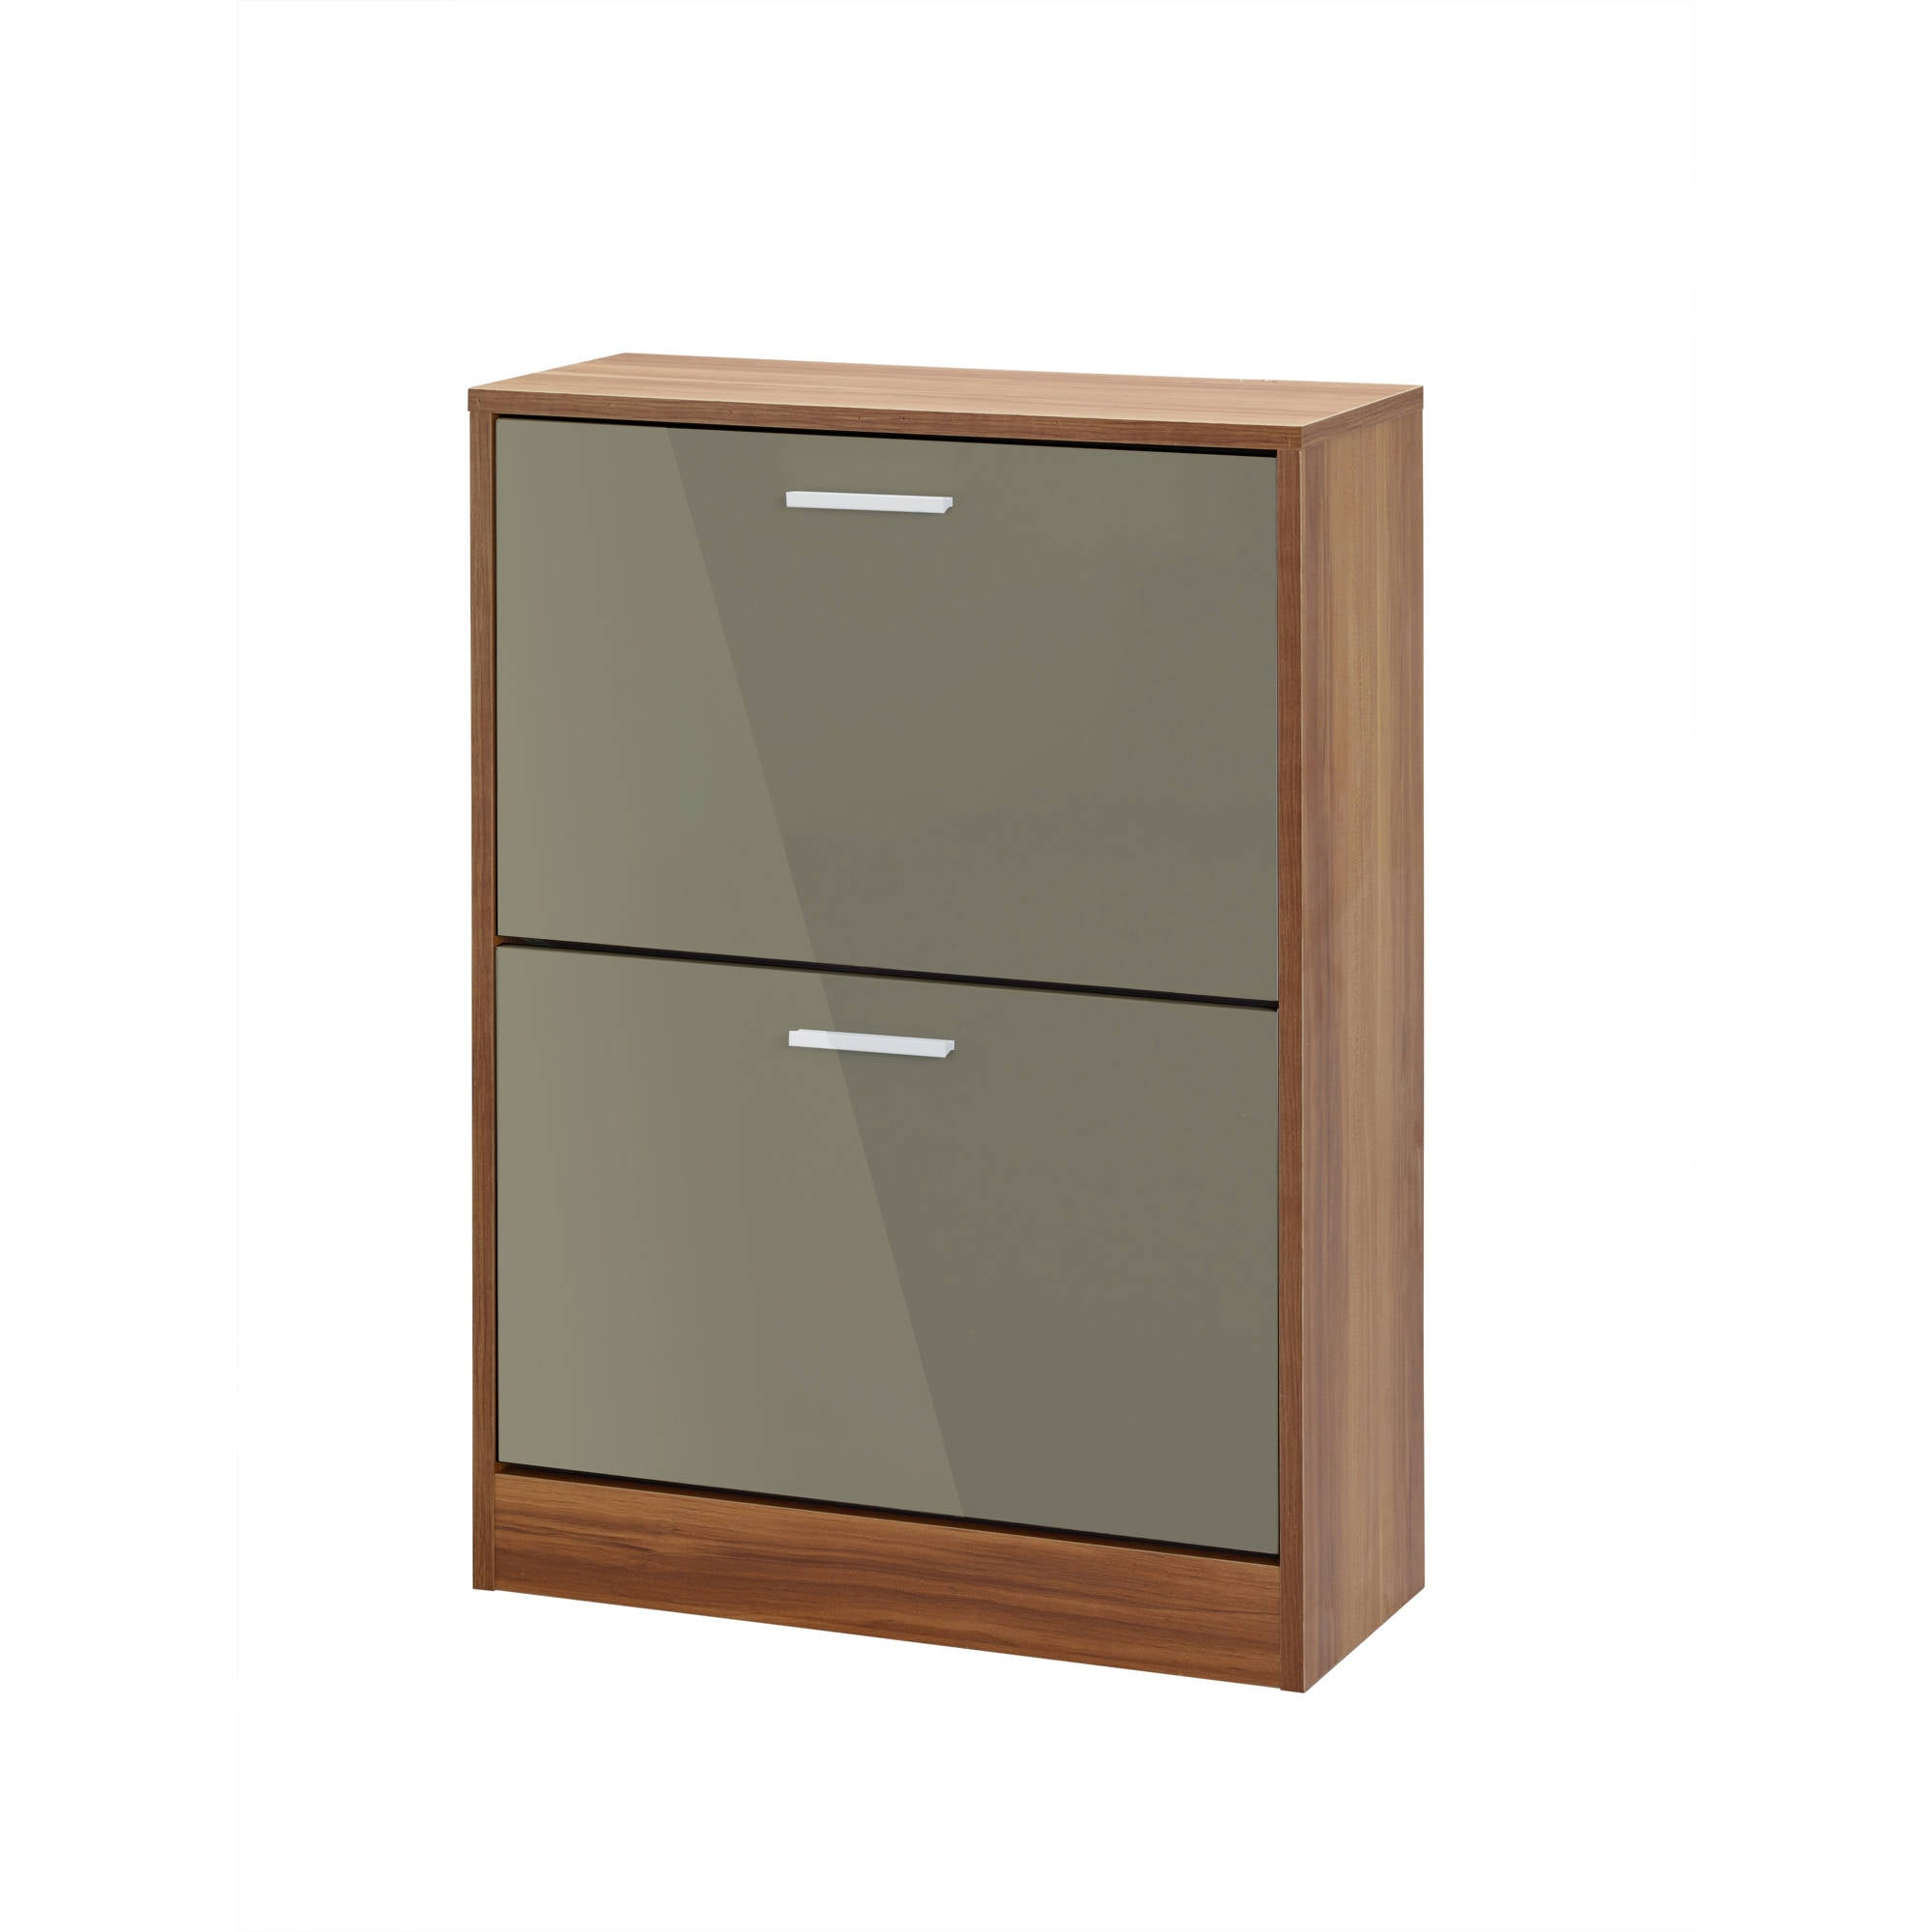 Chancery 2 Drawer Shoe Cabinet in Grey - Ezzo